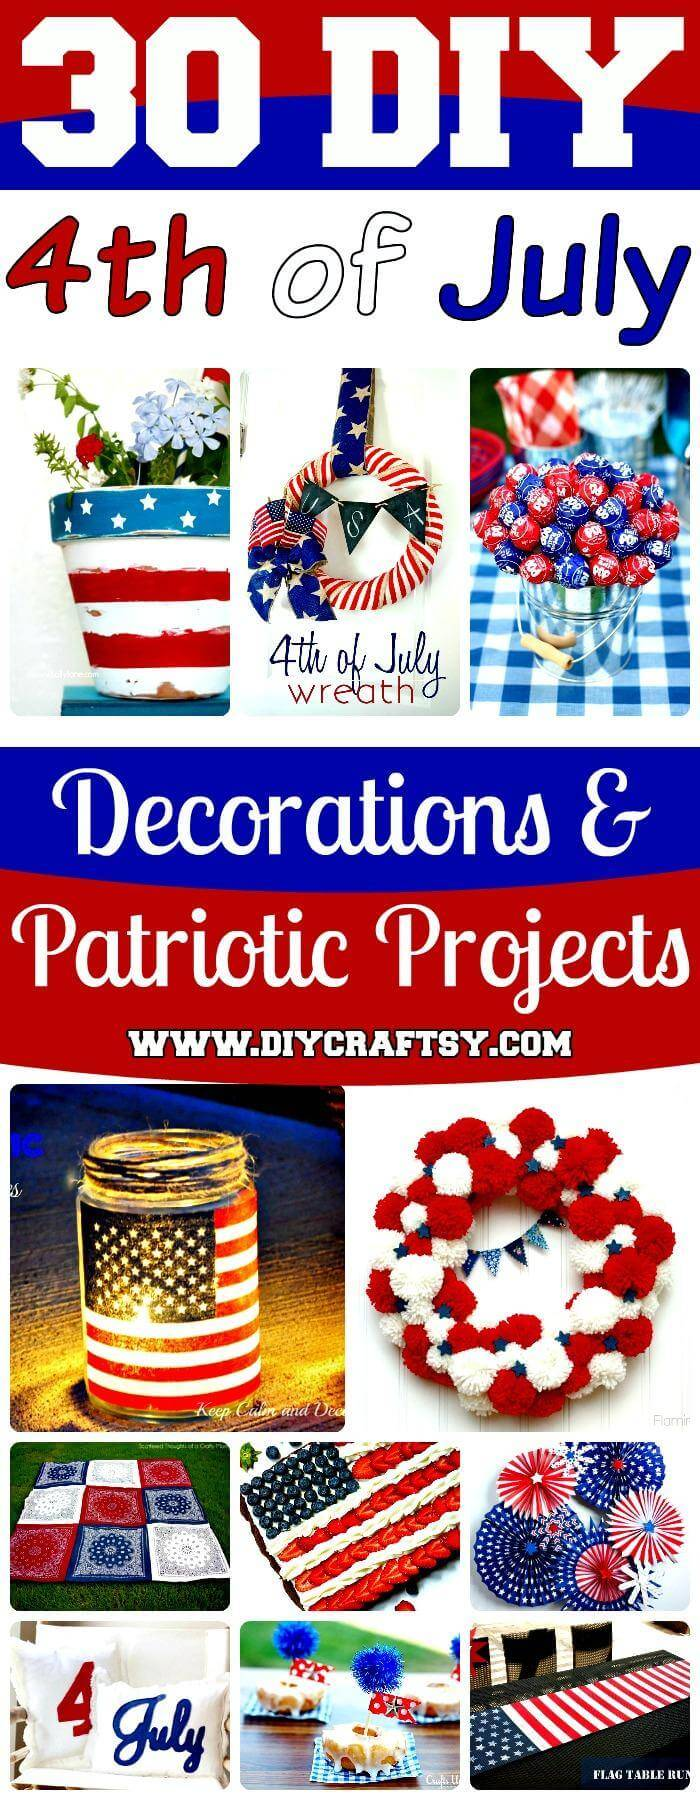 DIY 4th of July Decorations - Patriotic DIY Fourth of July Decor Projects